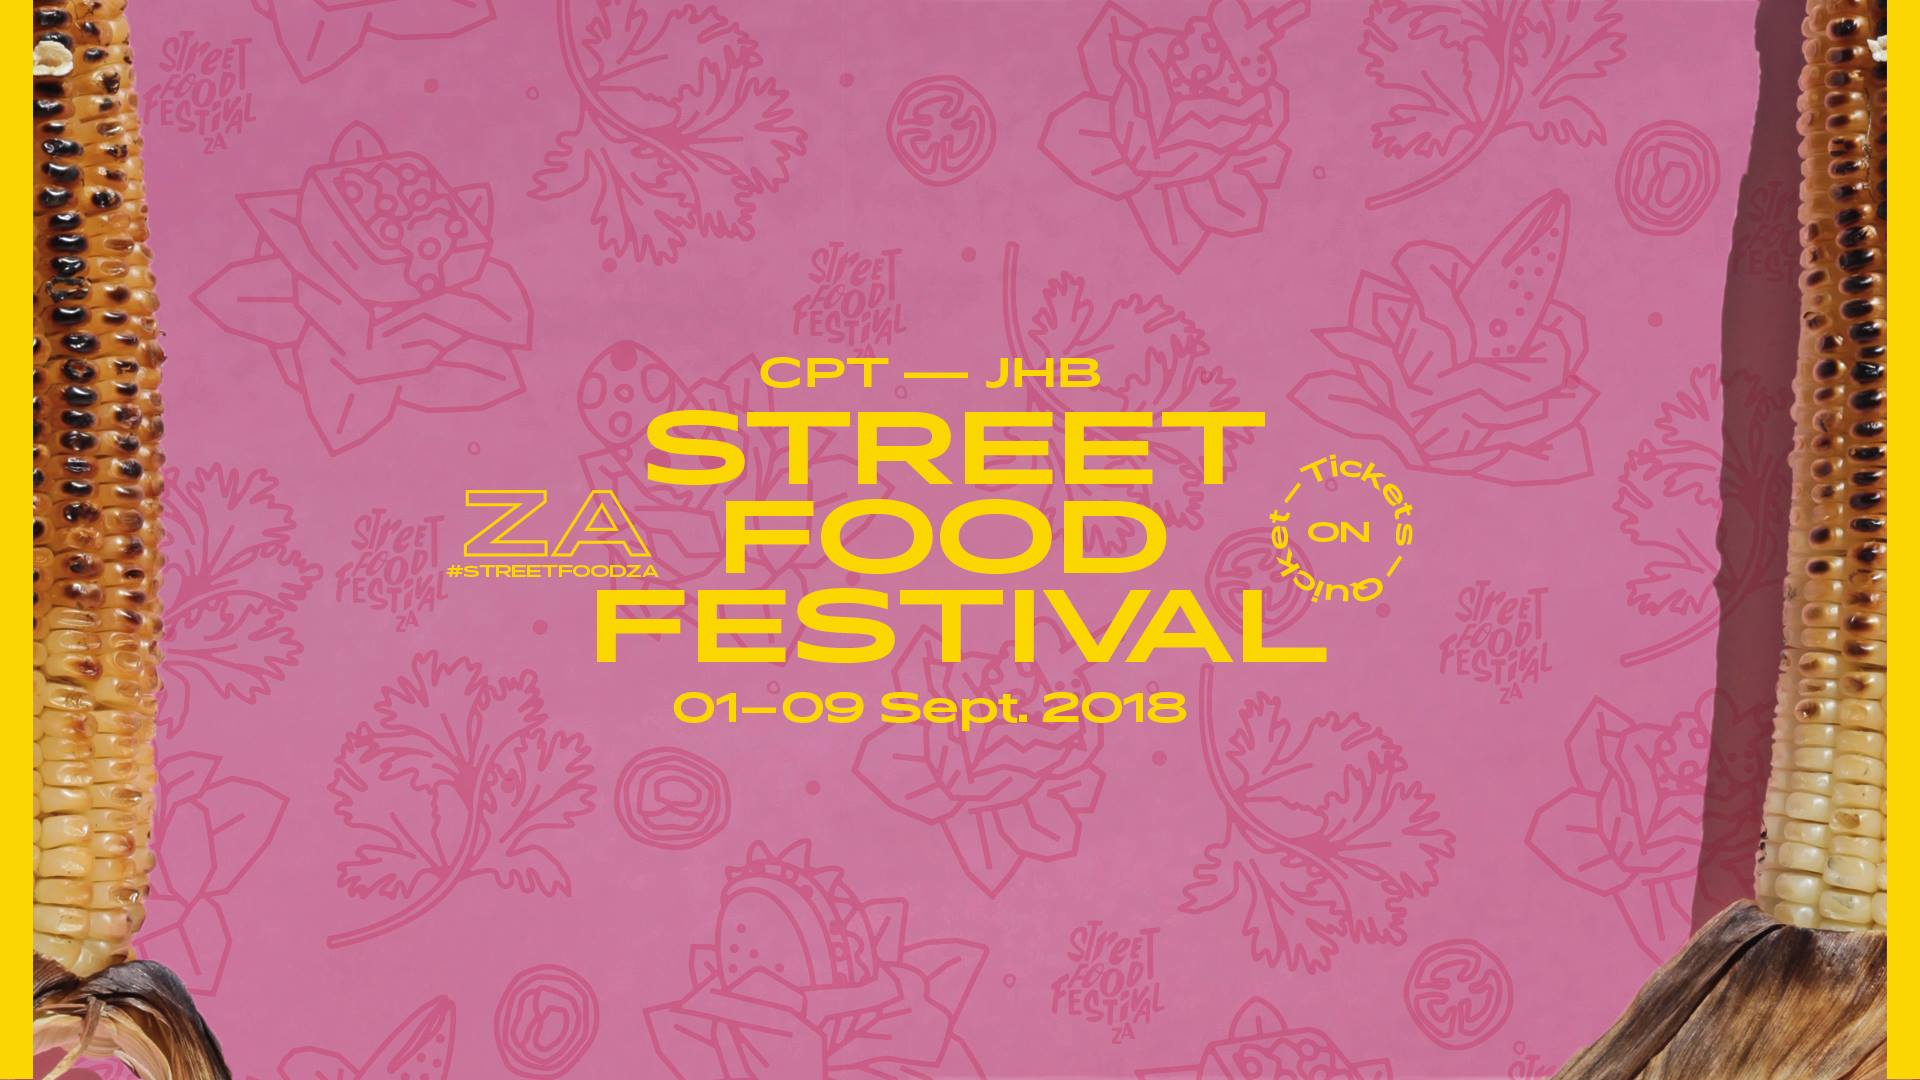 Street Food Festival 2018: Cape Town